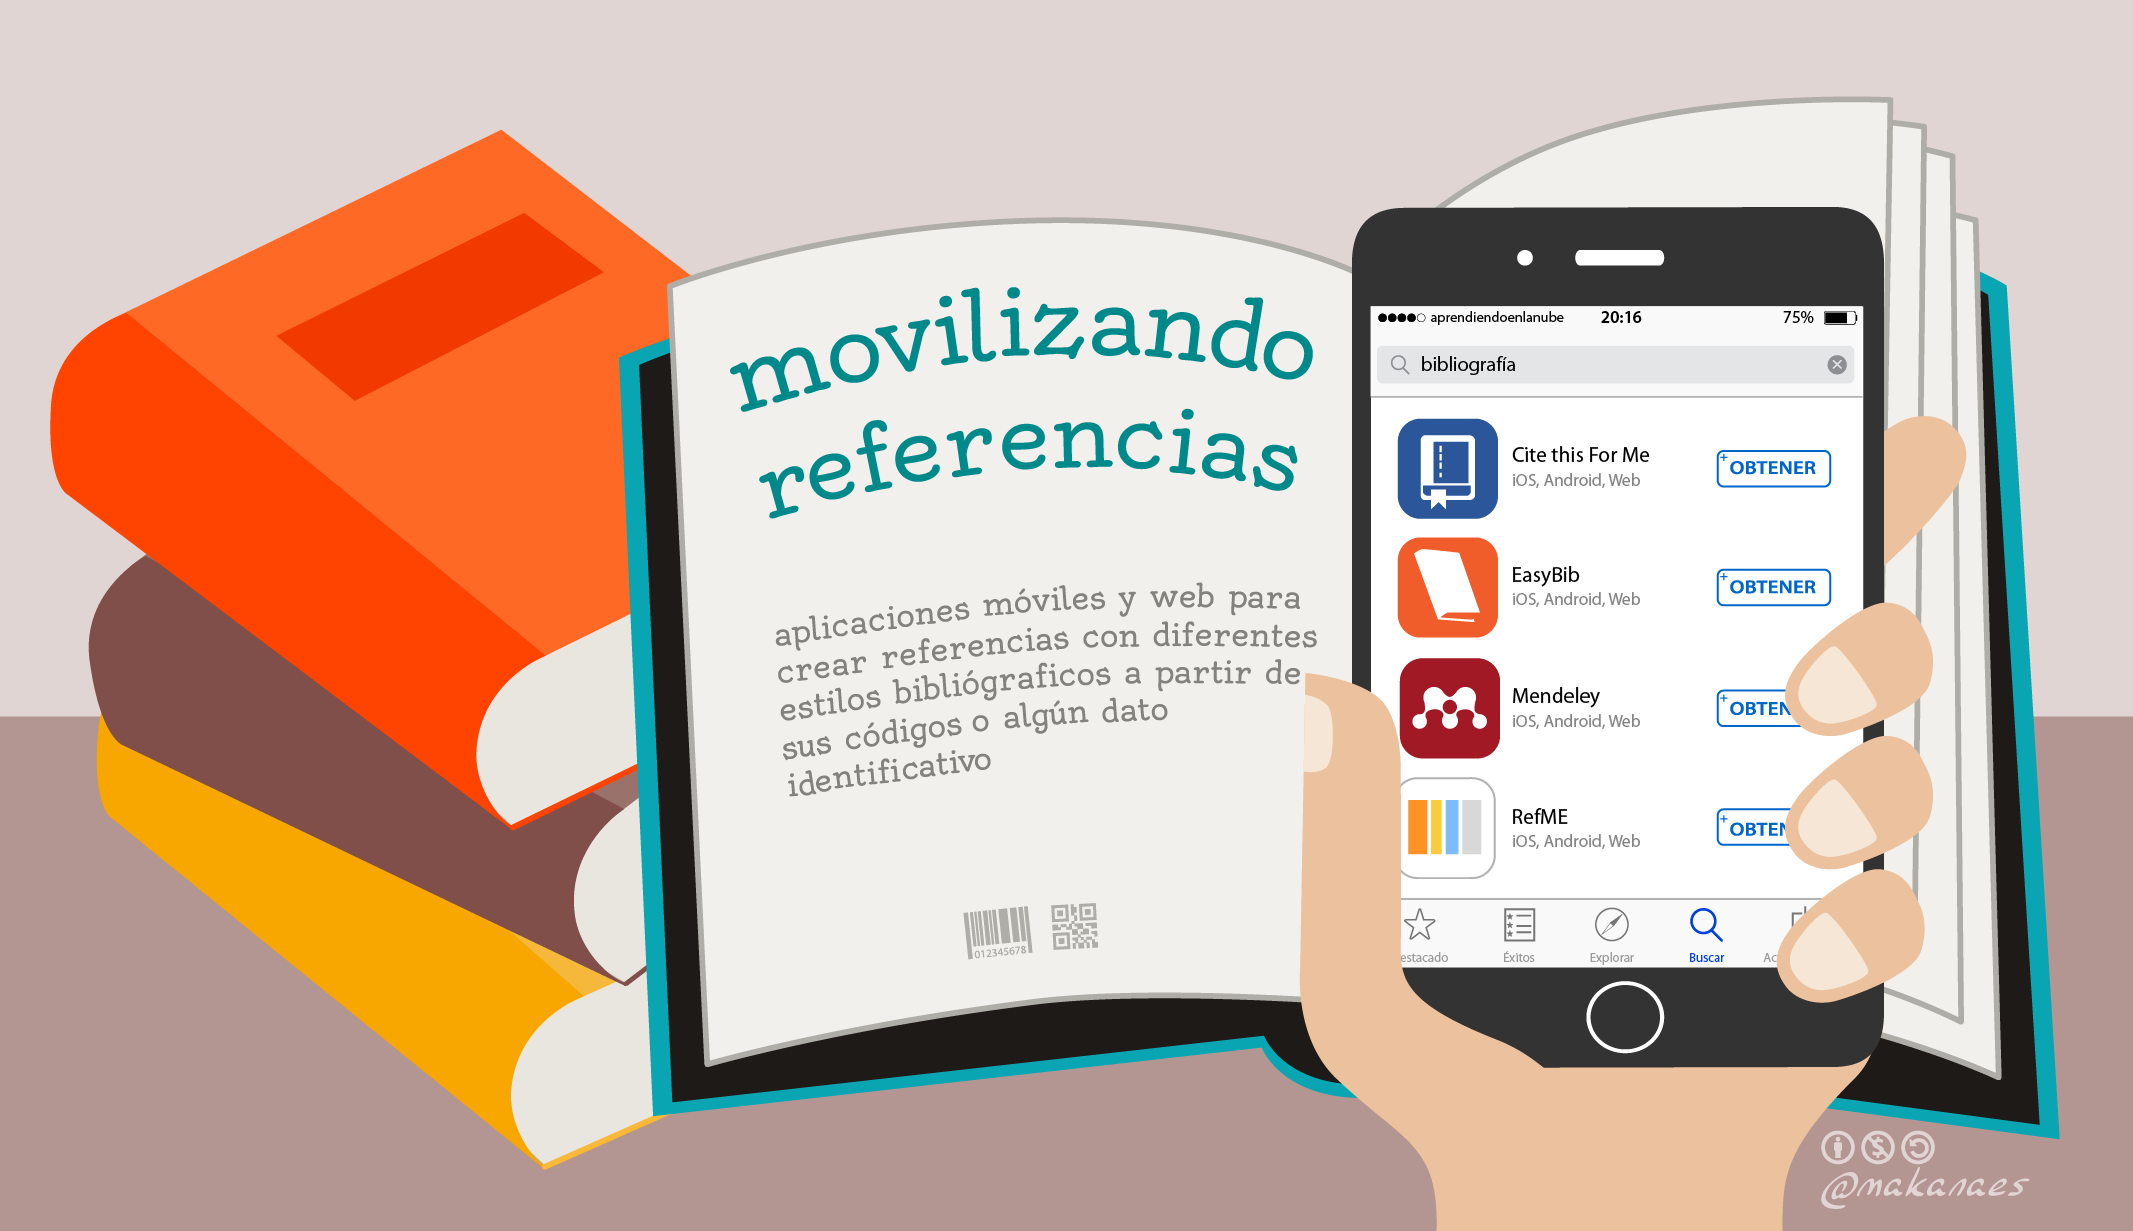 Movilizando referencias bibliográficas